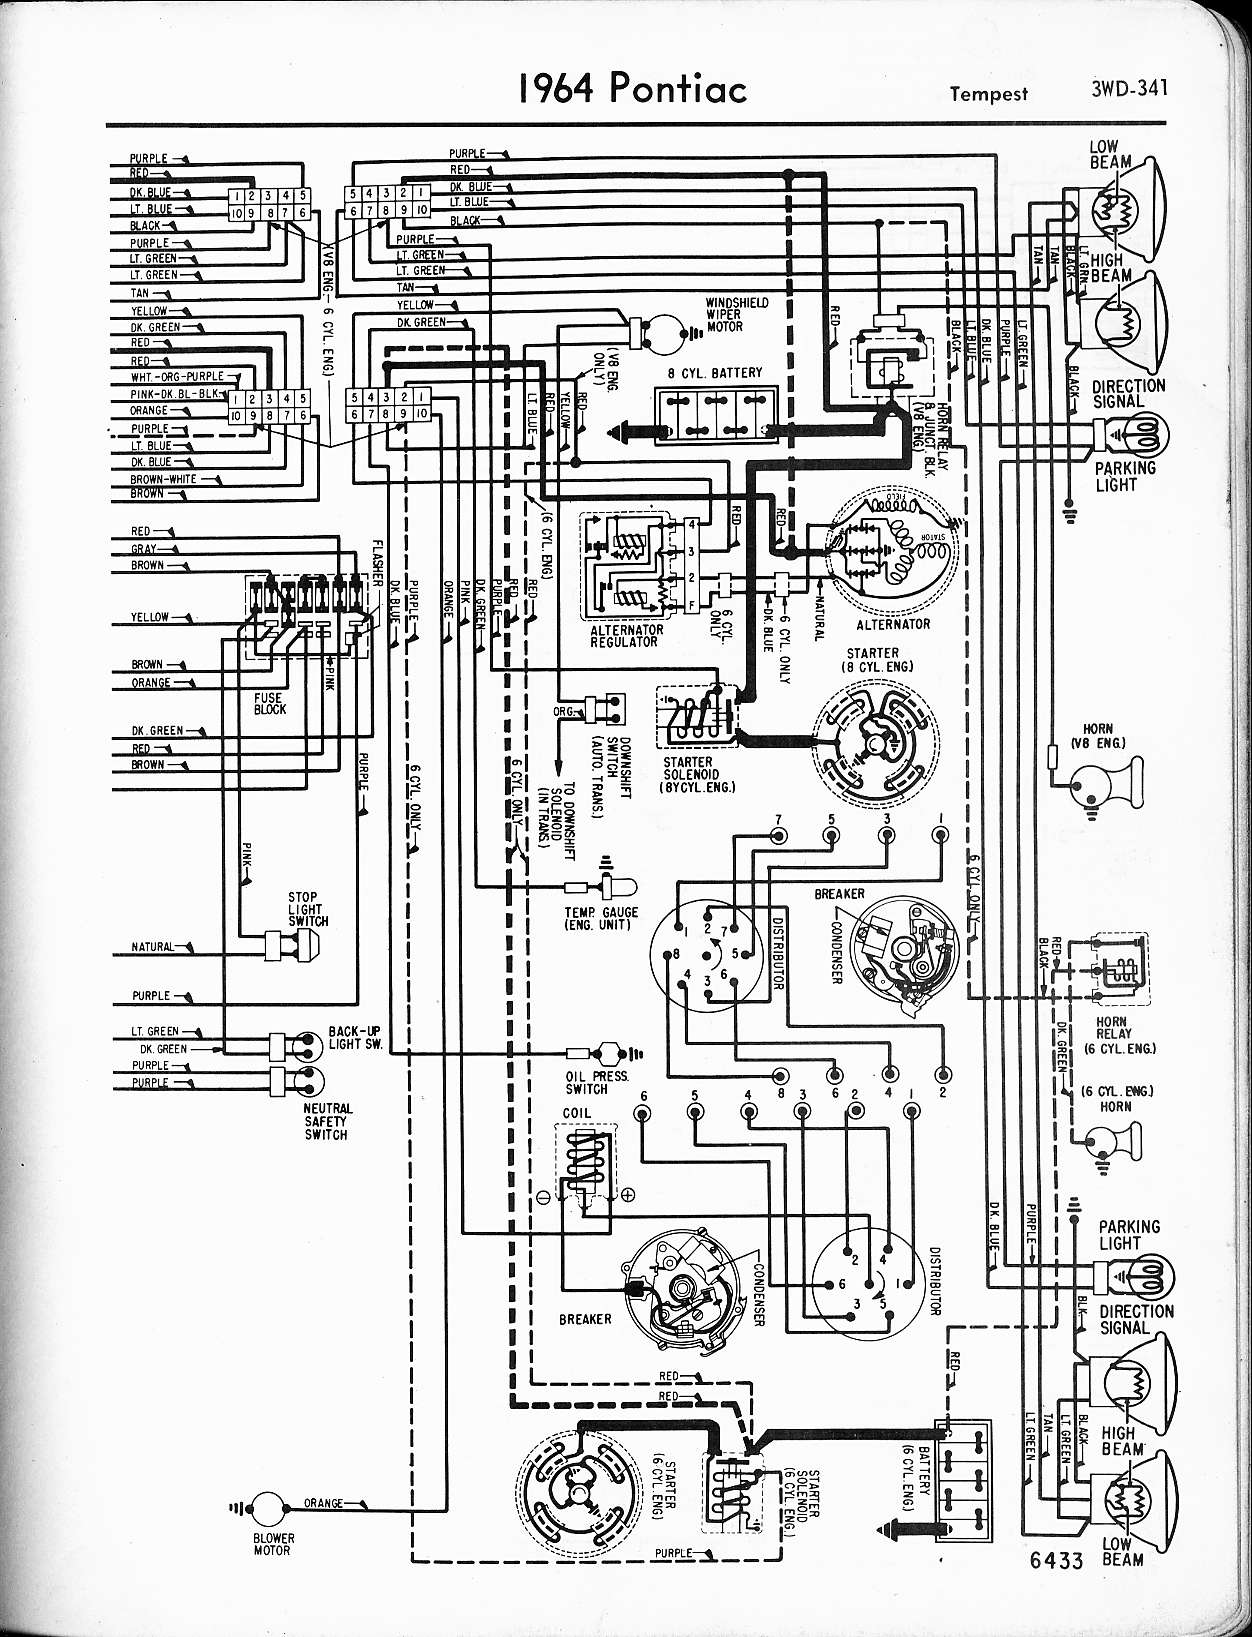 wallace racing wiring diagrams rh wallaceracing com 1964 pontiac lemans wiring diagram 1964 pontiac tempest wiring diagram